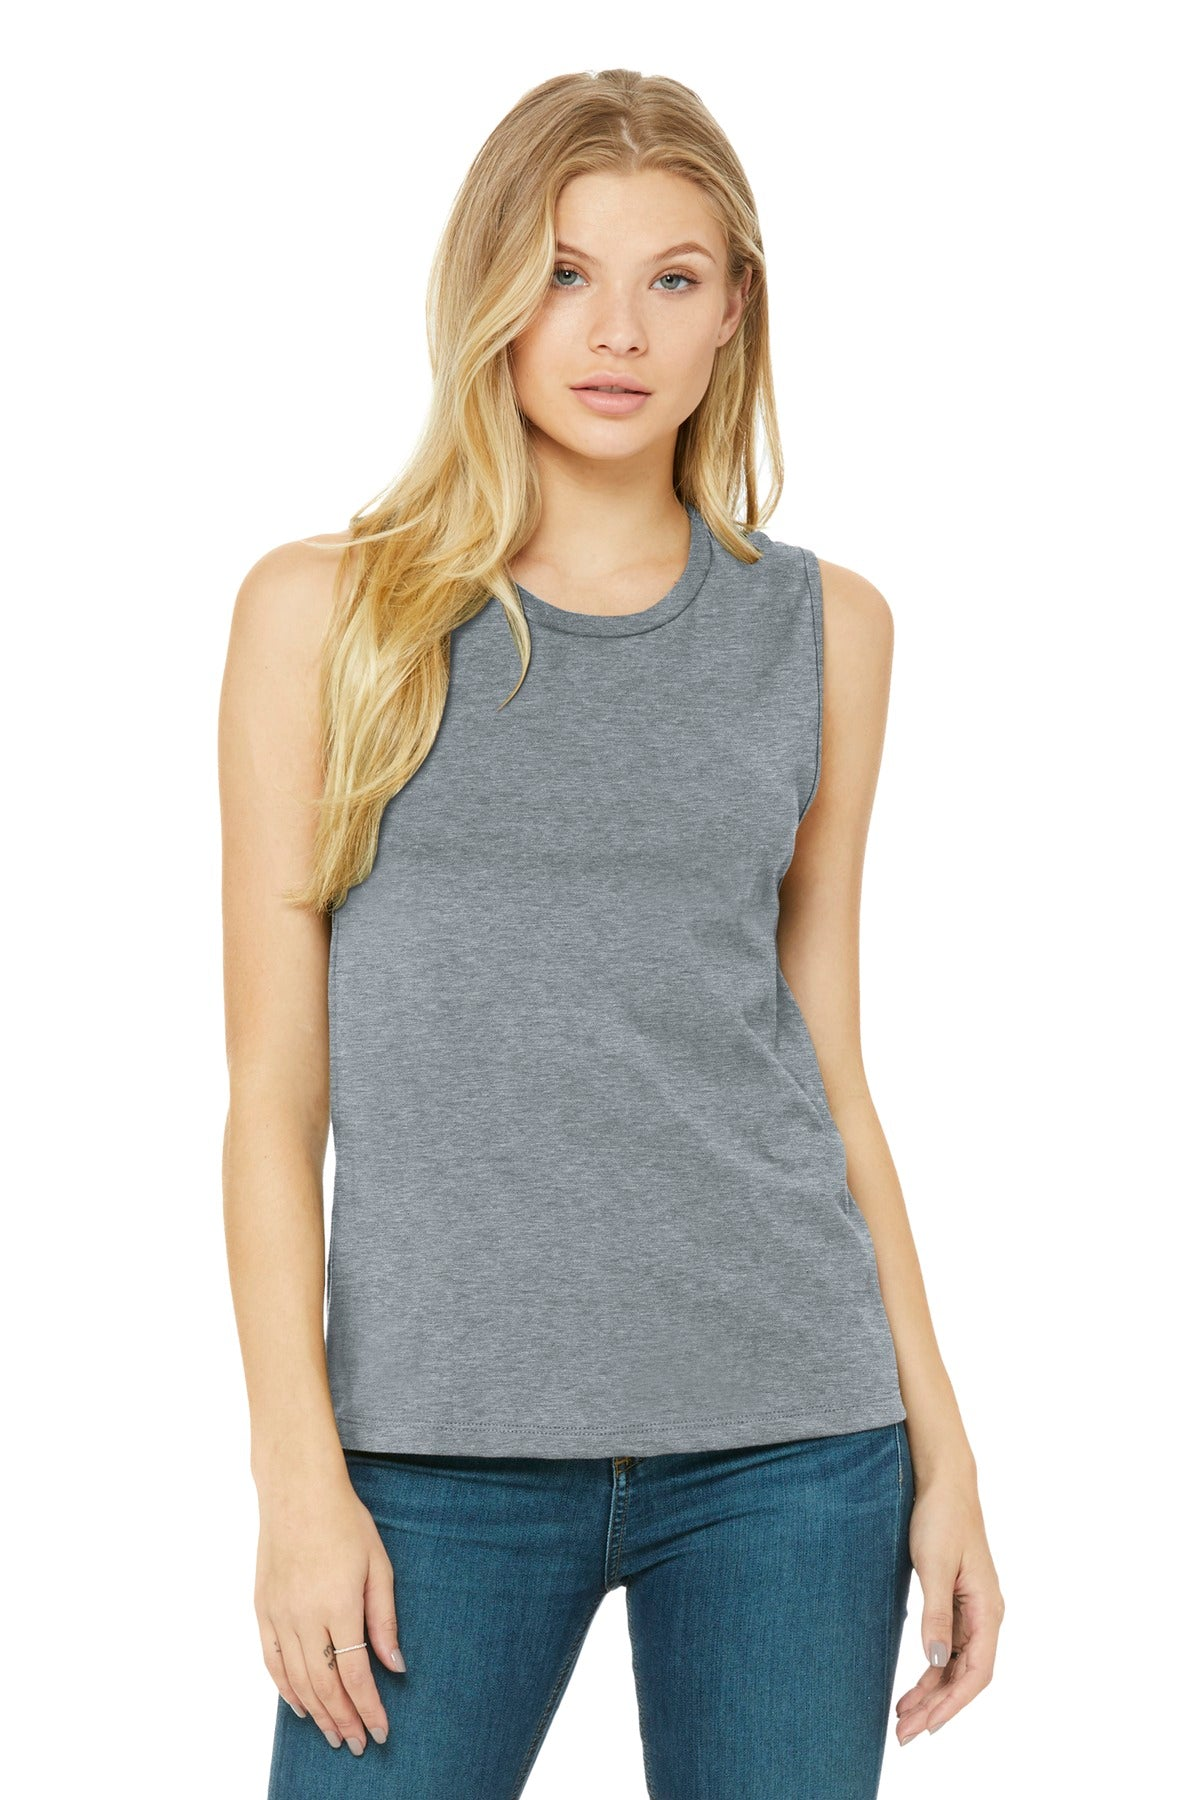 BELLA+CANVAS ® Women's Jersey Muscle Tank. BC6003